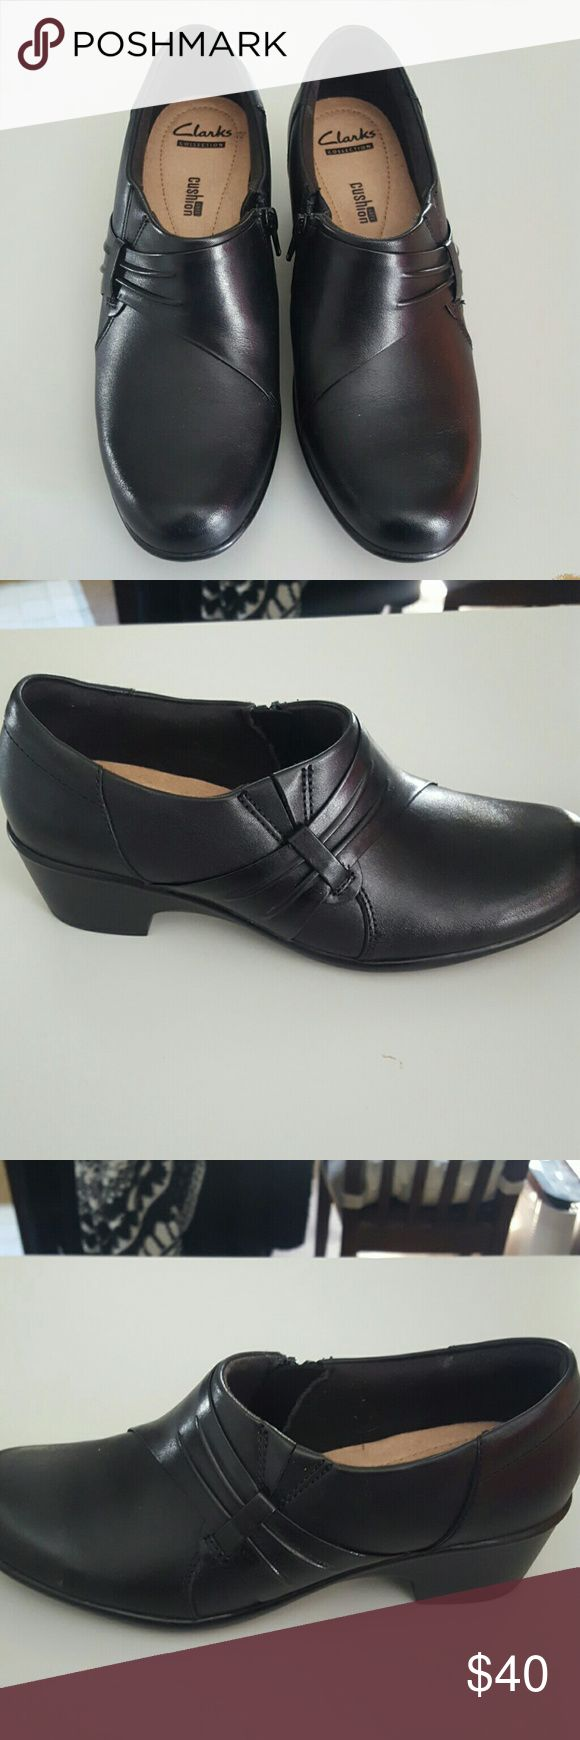 Clark's shoes Worn only once, very cute and comfortable clarks Clarks Shoes